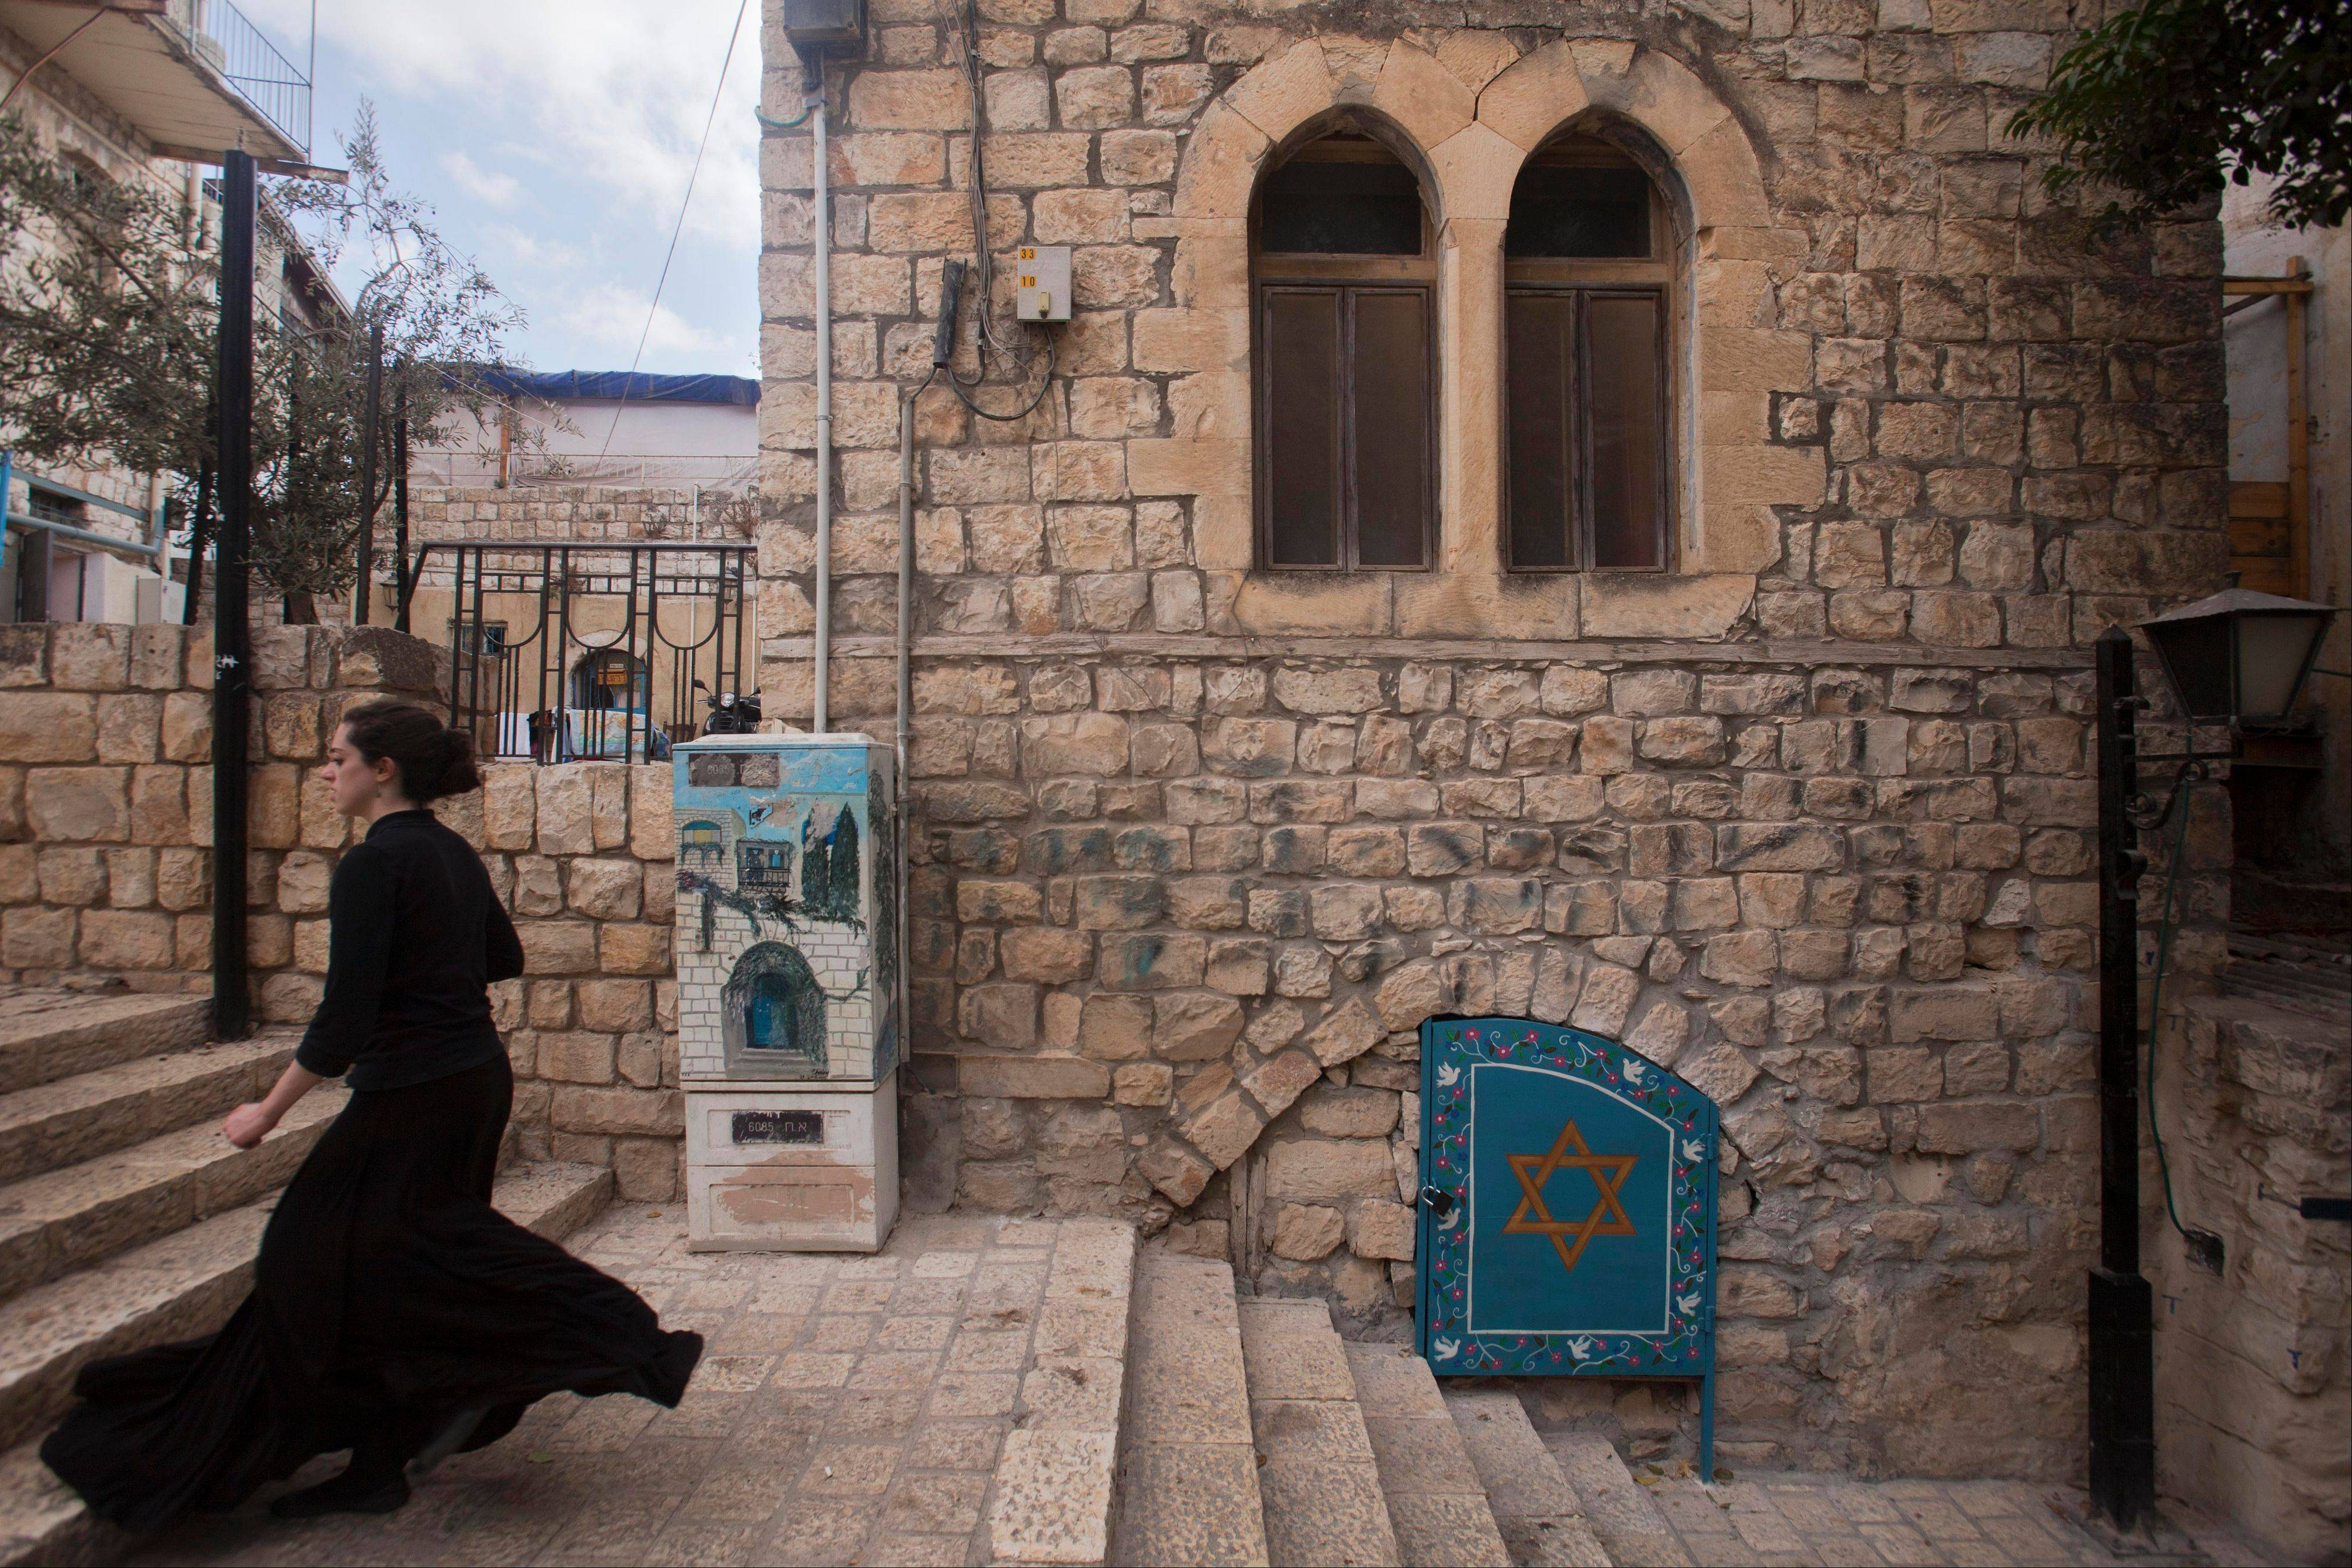 A woman walks the street of Safed, Israel in northern Israel. Safed is a popular destination for all kabbalah or Jewish mysticism, followers.